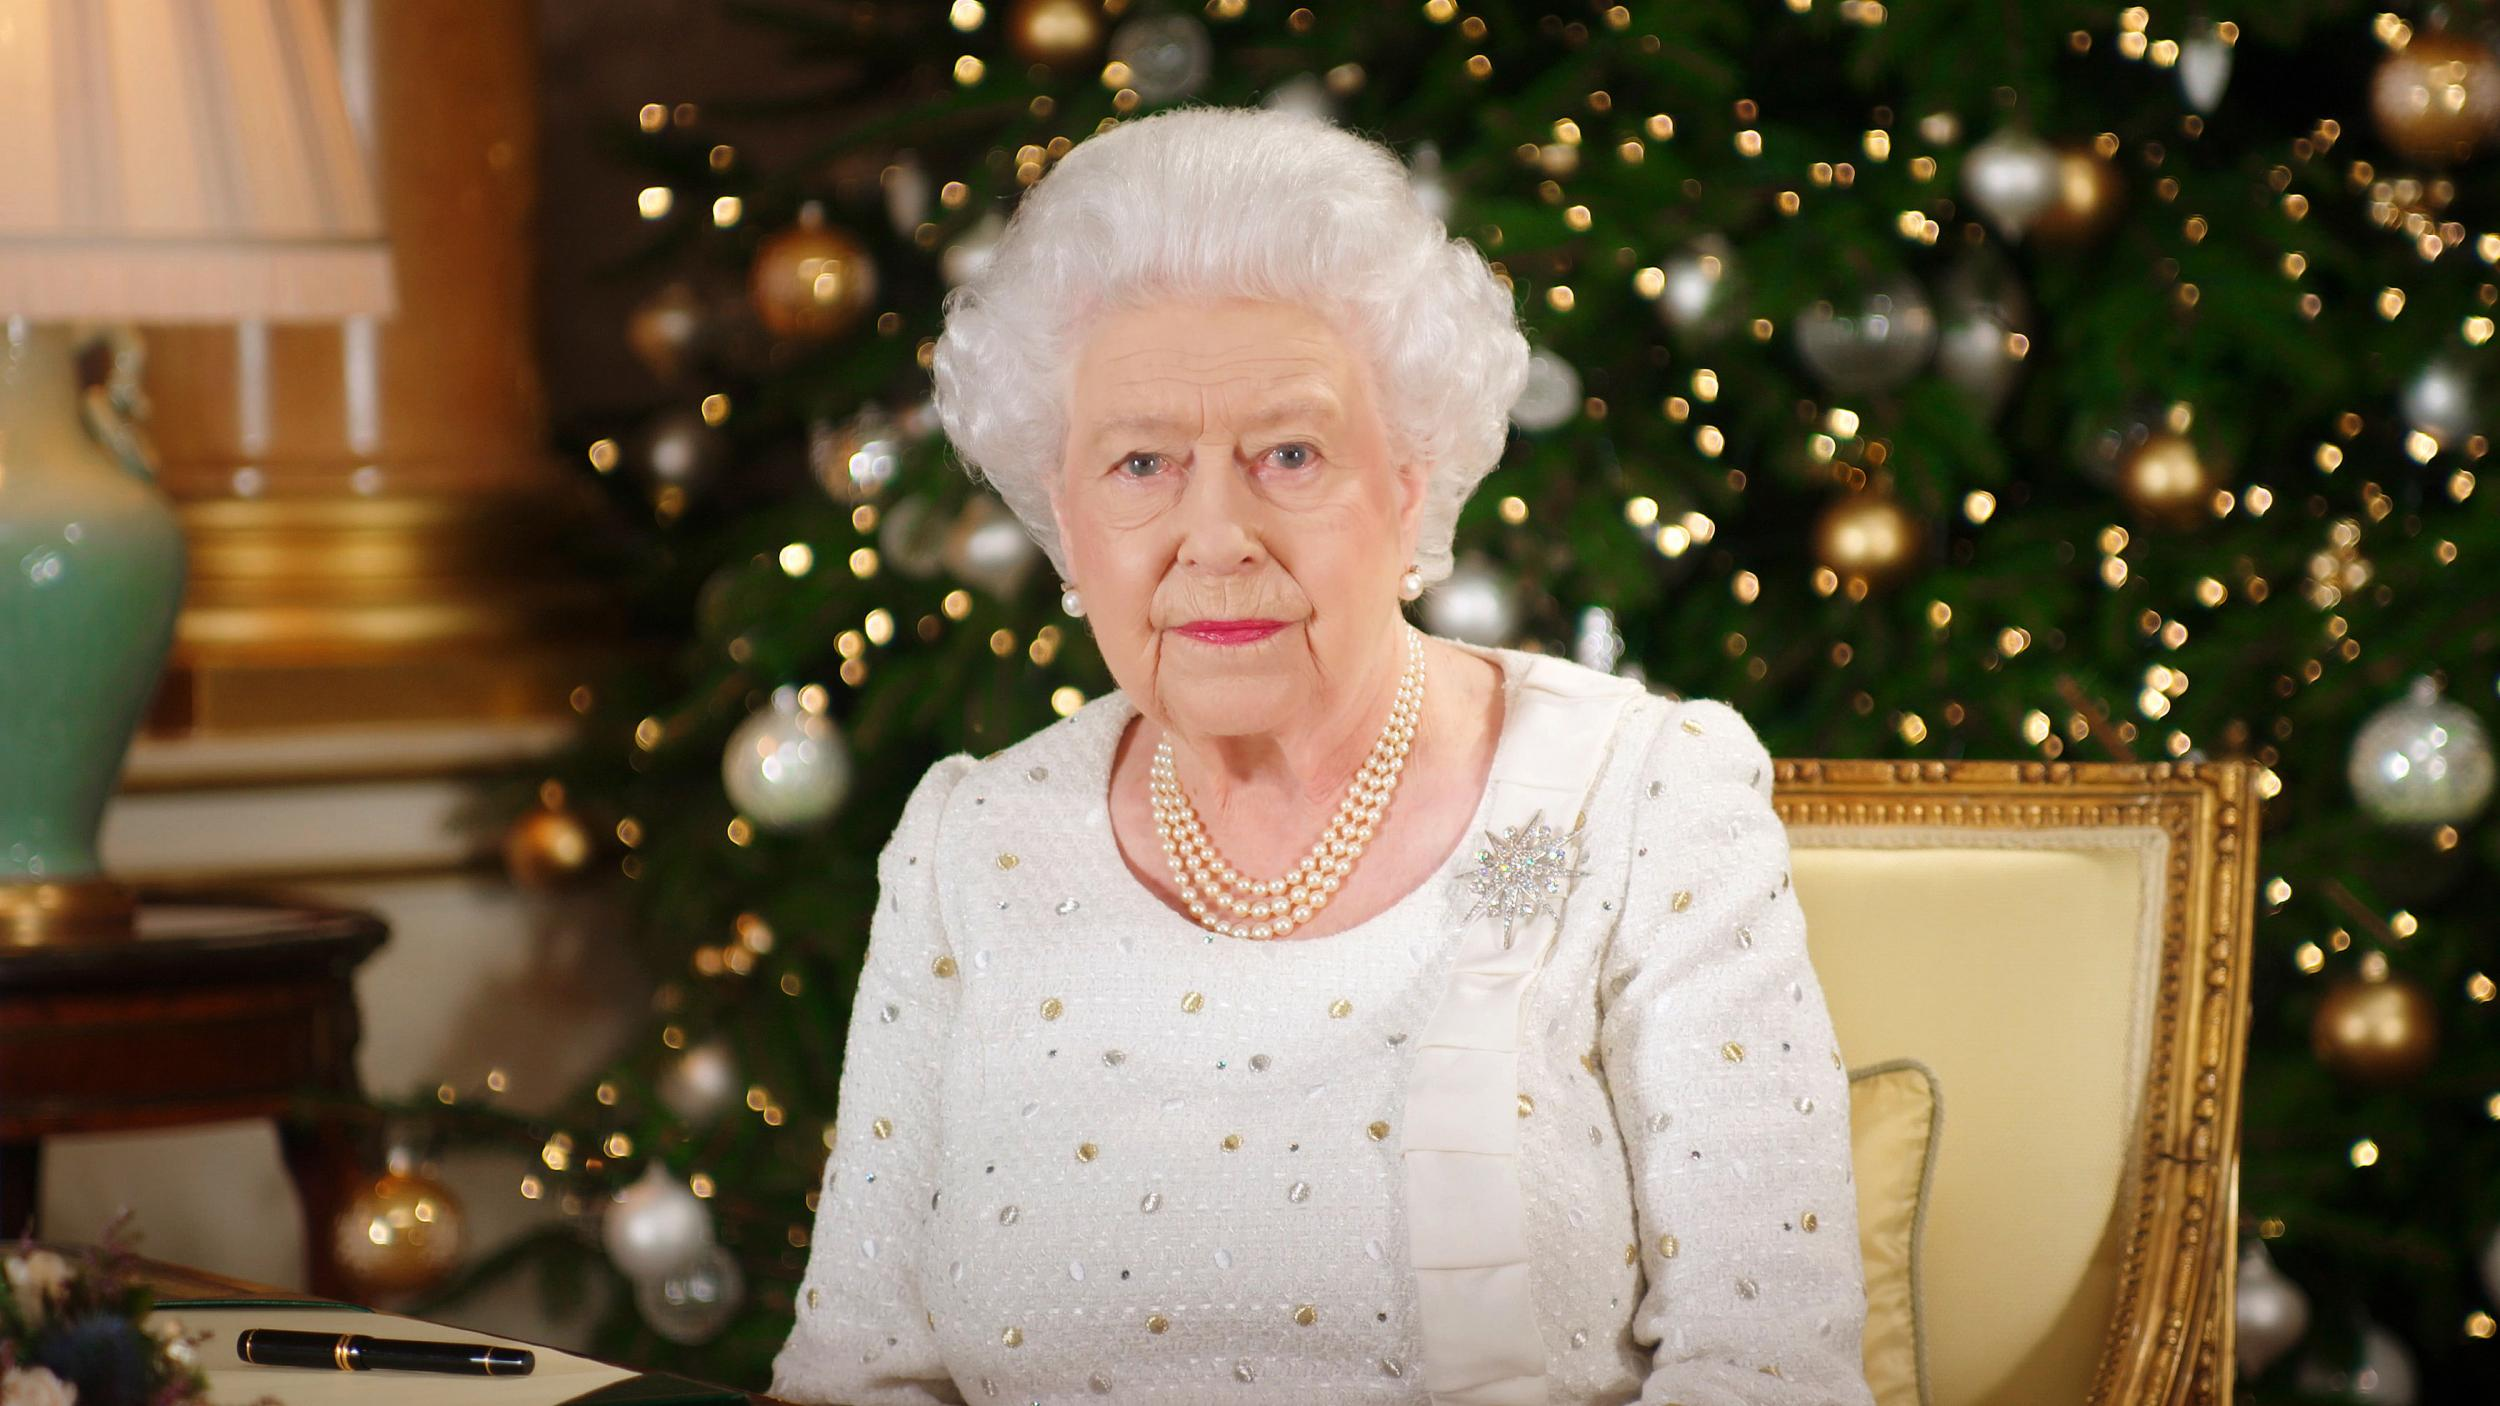 Queen Elizabeth II - latest news, breaking stories and comment - The ...